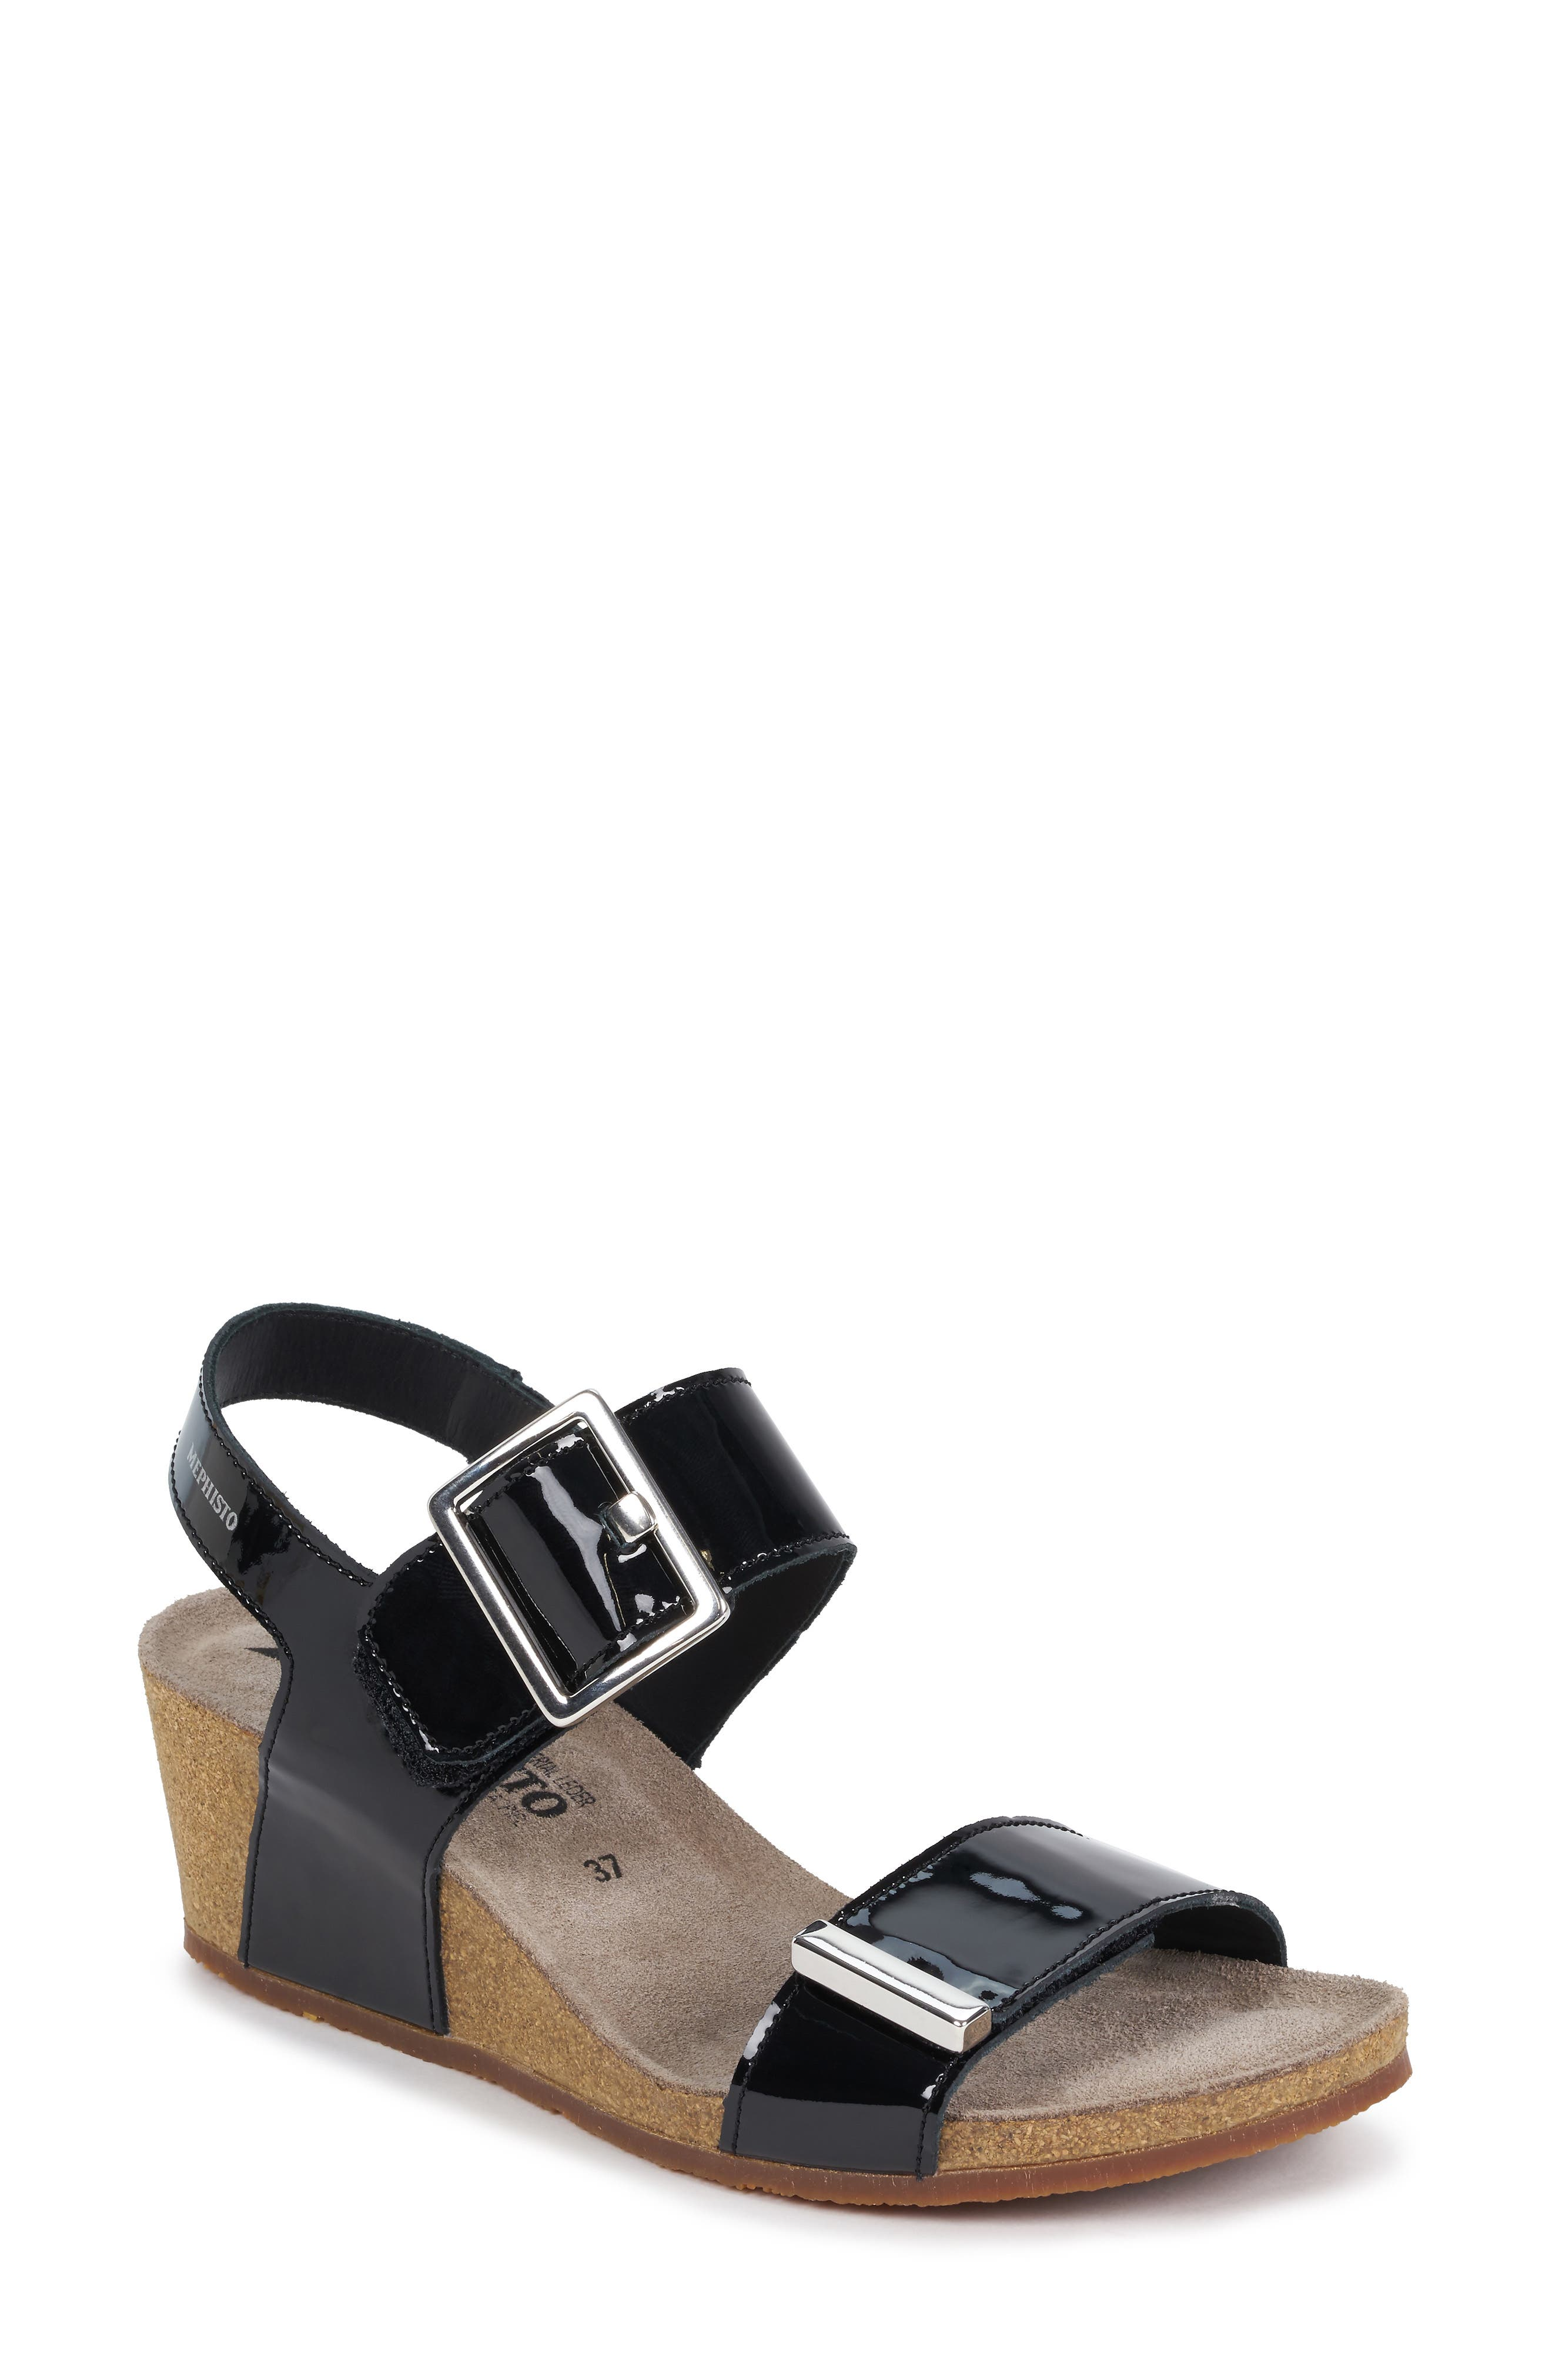 MEPHISTO Morgana Wedge Sandal, Main, color, BLACK PATENT